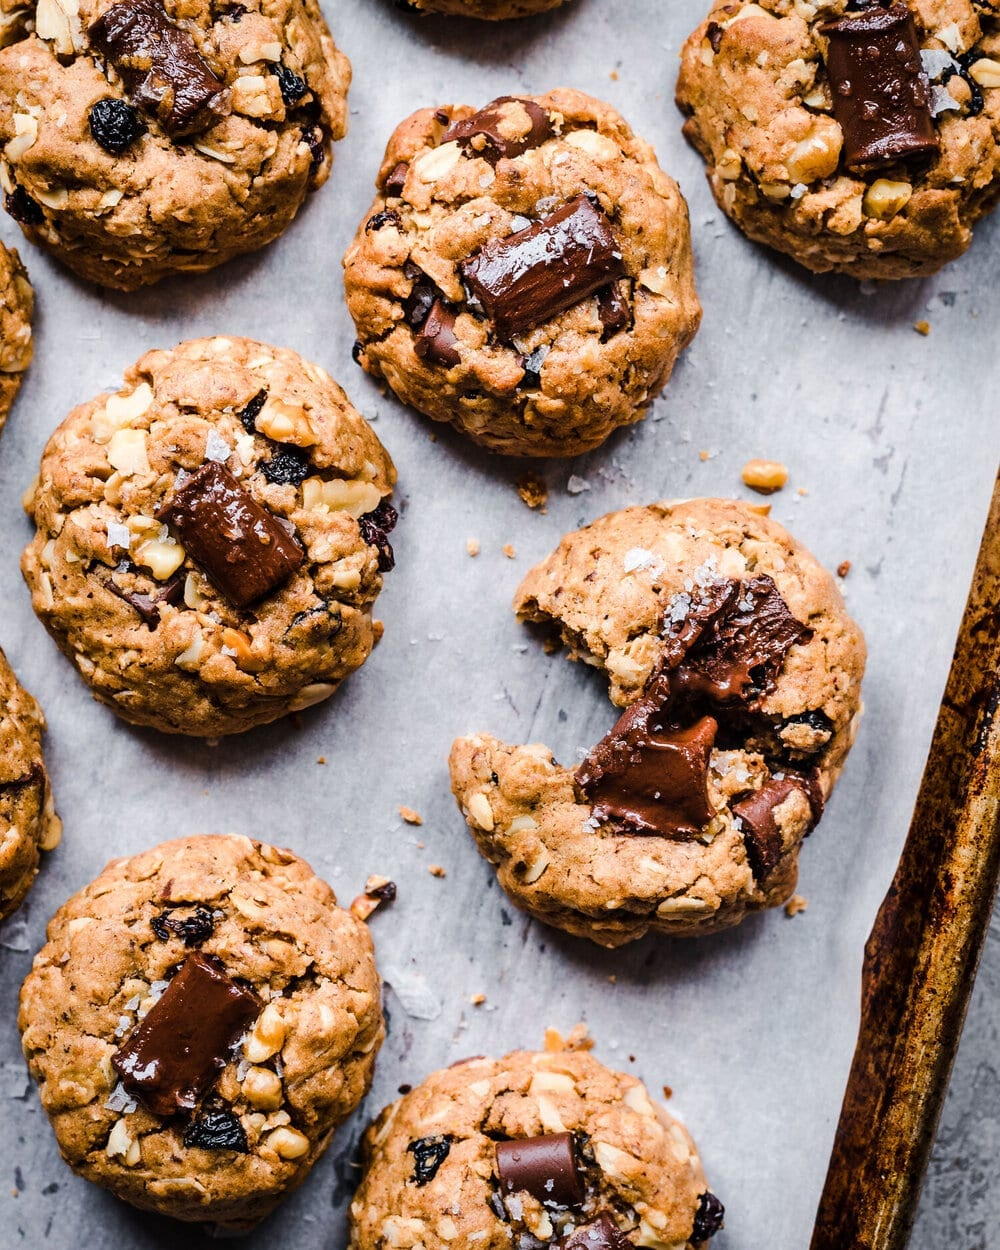 chunky+cookies+with+bite+(1+of+1).jpg